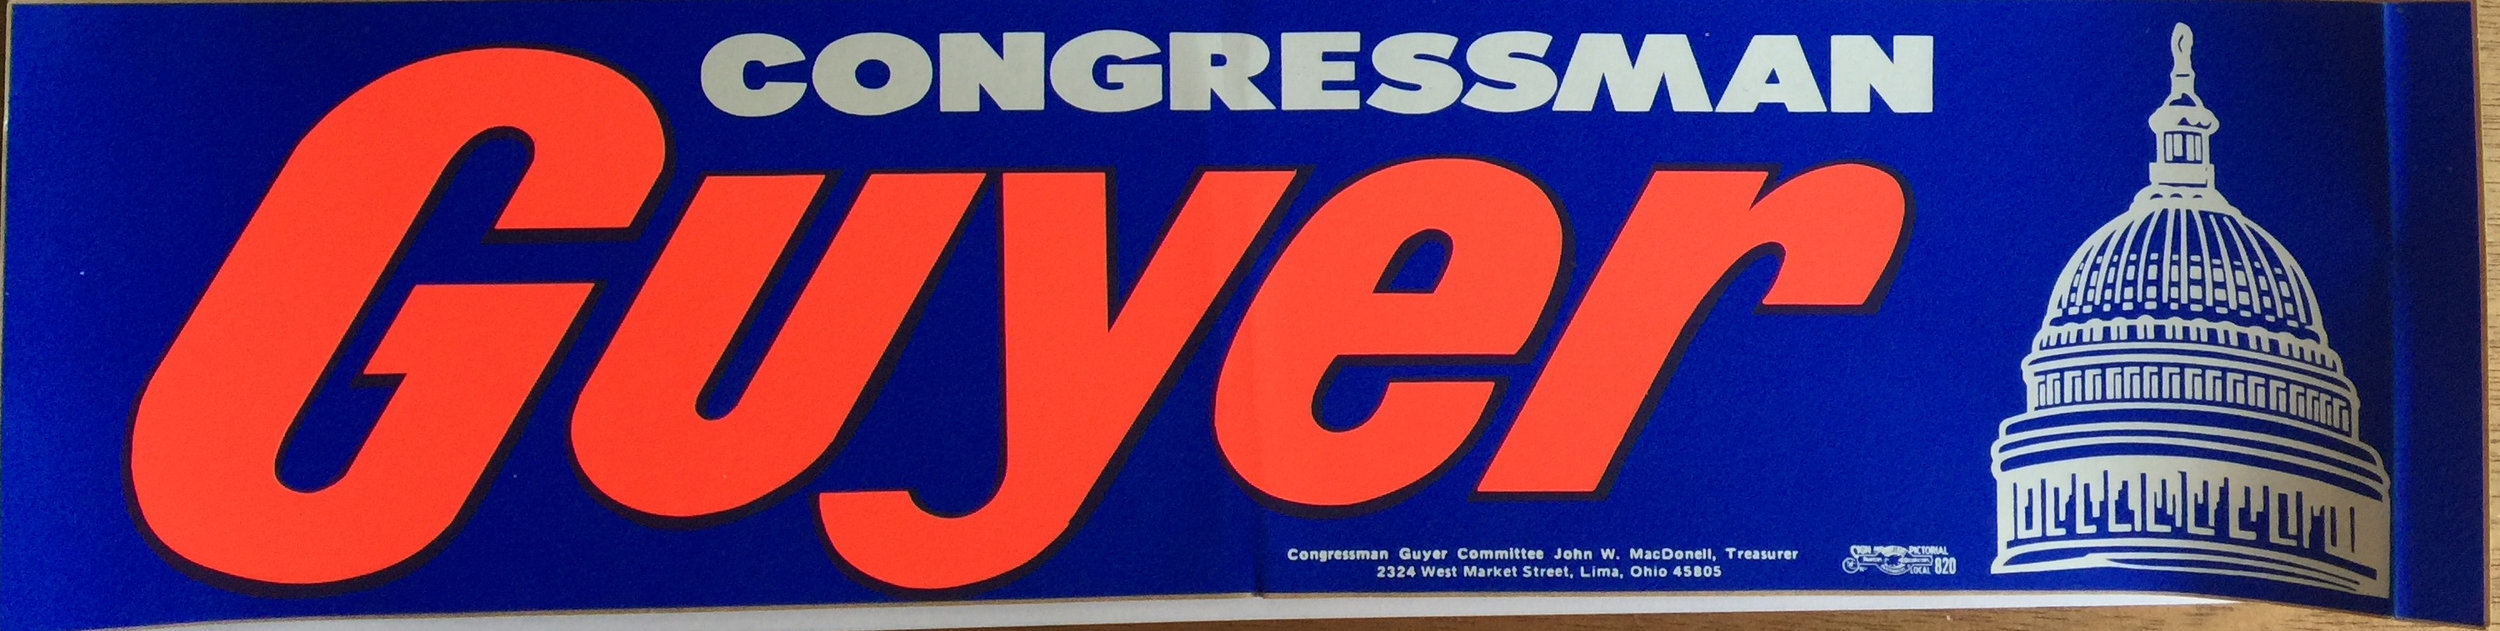 Sticker-congress GUYER.jpg